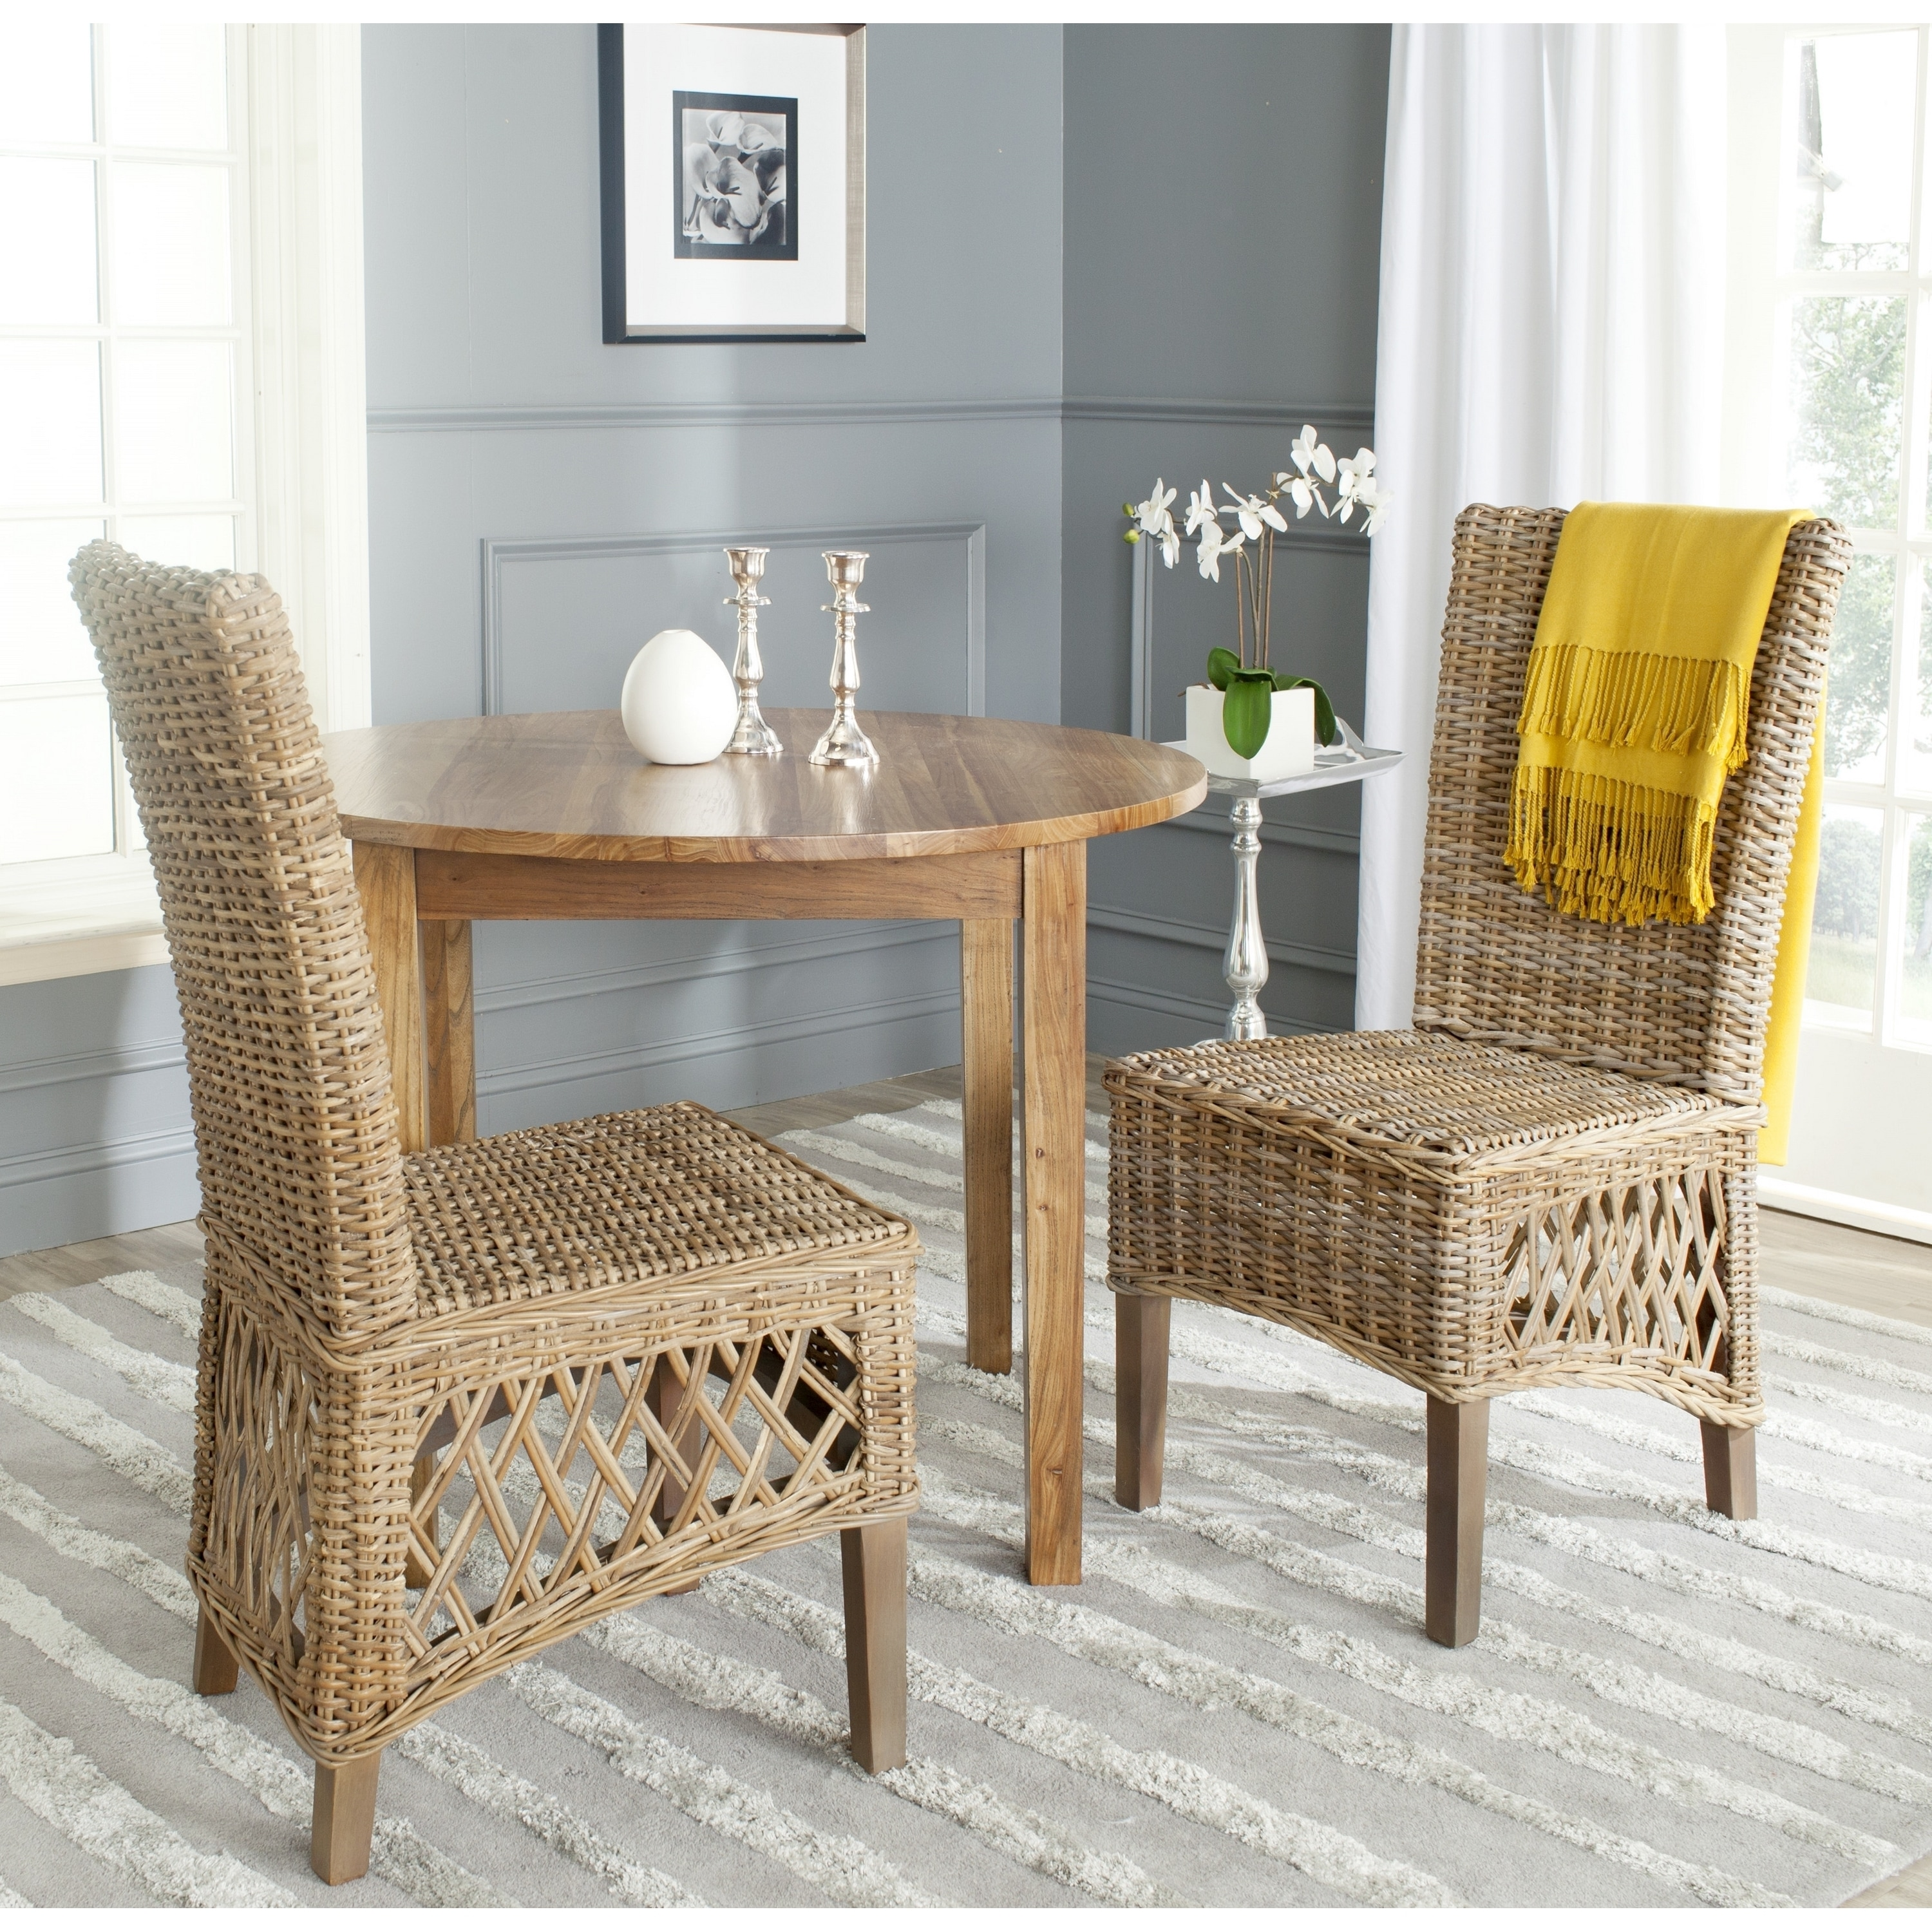 Buy kitchen dining room chairs online at overstock com our best dining room bar furniture deals